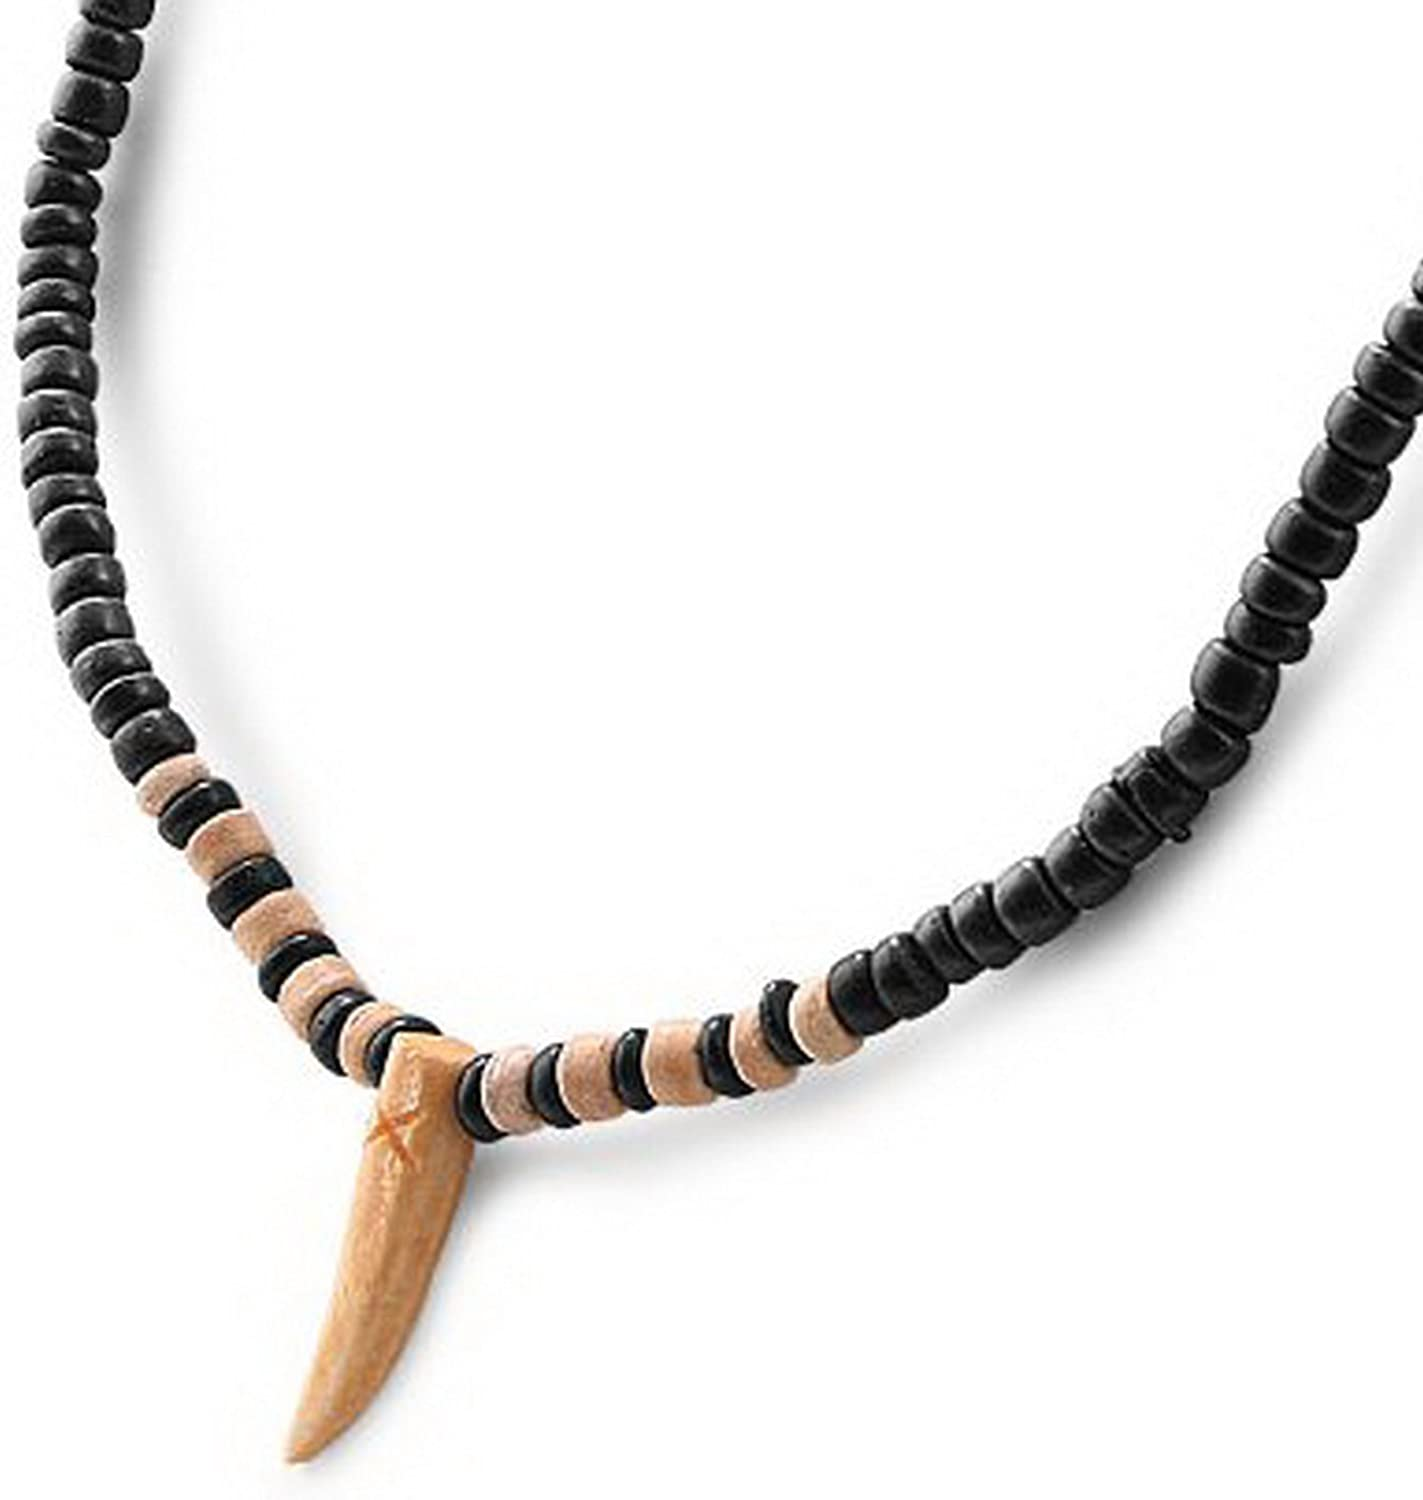 "JewelryVolt FN-5722 Organic Wooden Necklace w/ 17.5"" Black & Brown Beaded Chain - Shark Tooth"